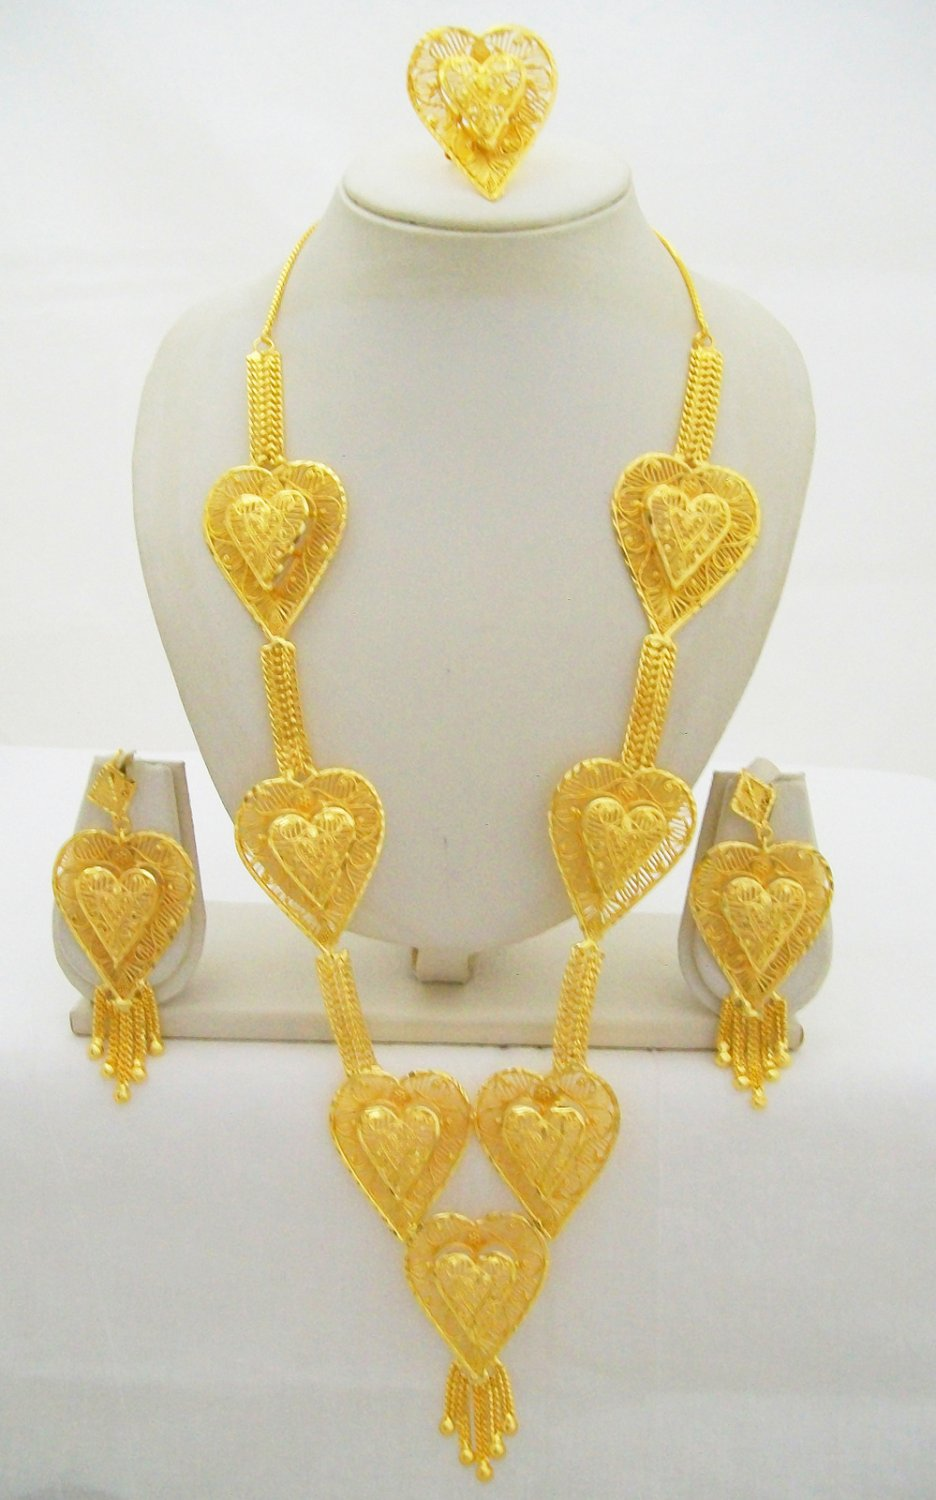 Rani Haar  Filigree Heart Gold Plated Long Necklace Indian Wedding Bridal Jewelry Set